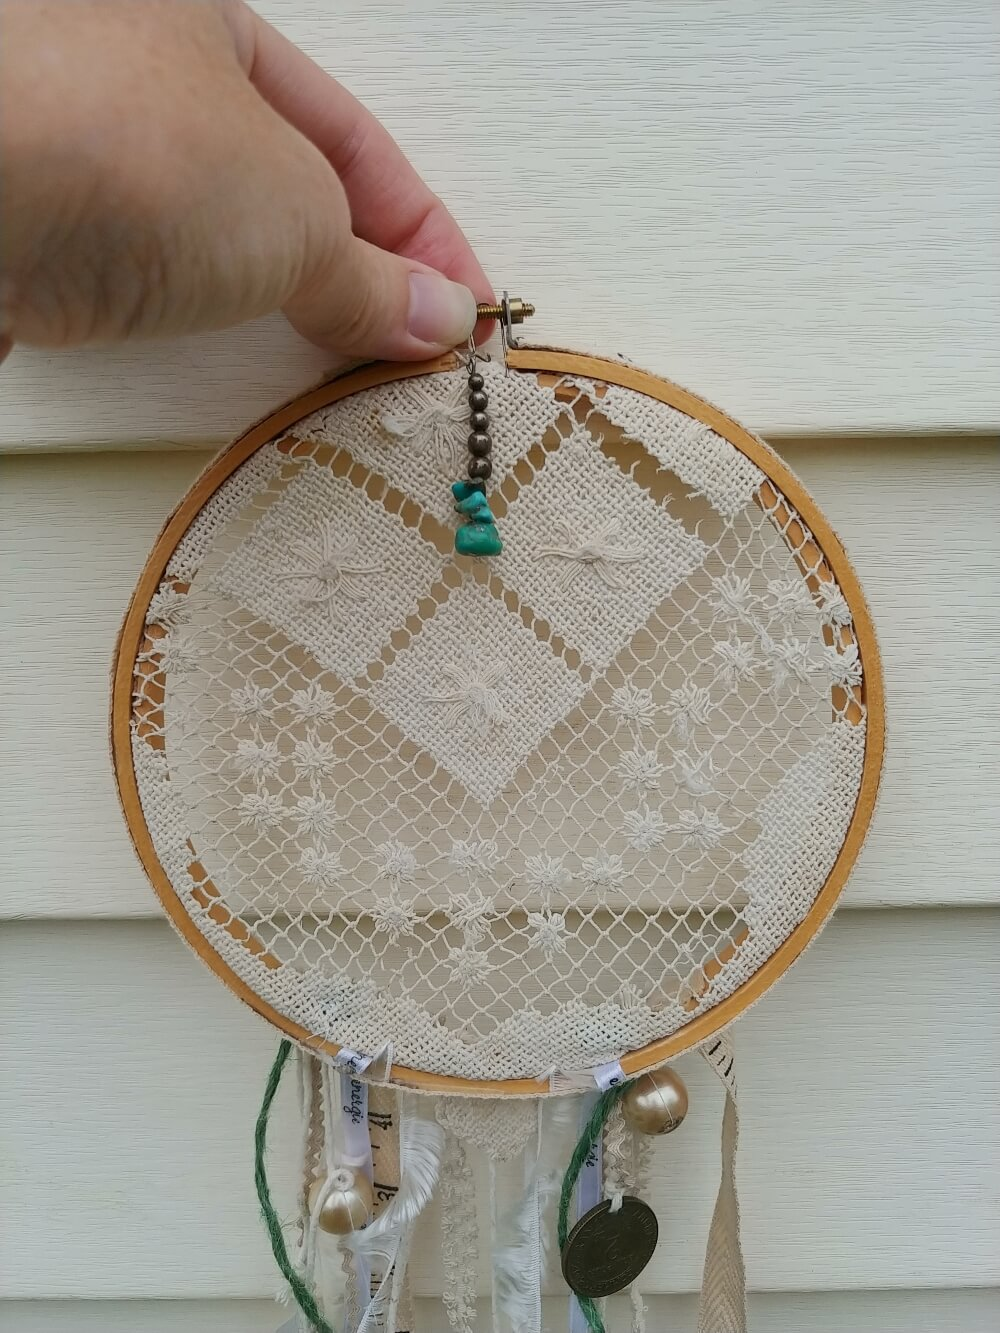 DIY Upcycled Dream Catcher - 7 Days of Thrift Shop Flips - Day Six